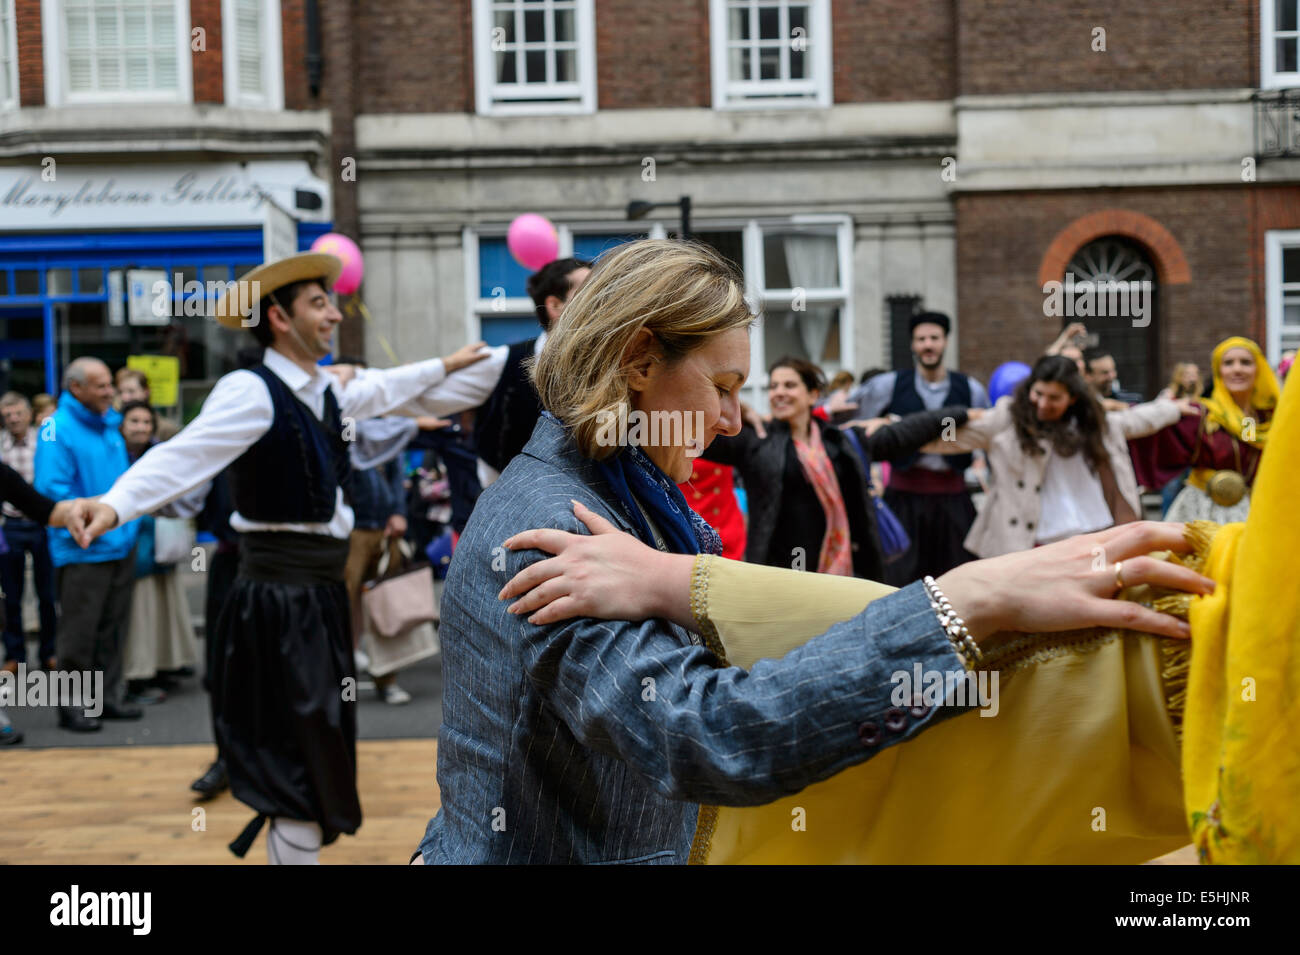 Member of the public female woman joins in with a Greek syrtaki dance troupe at Marylebone Street Summer Fayre fair, - Stock Image